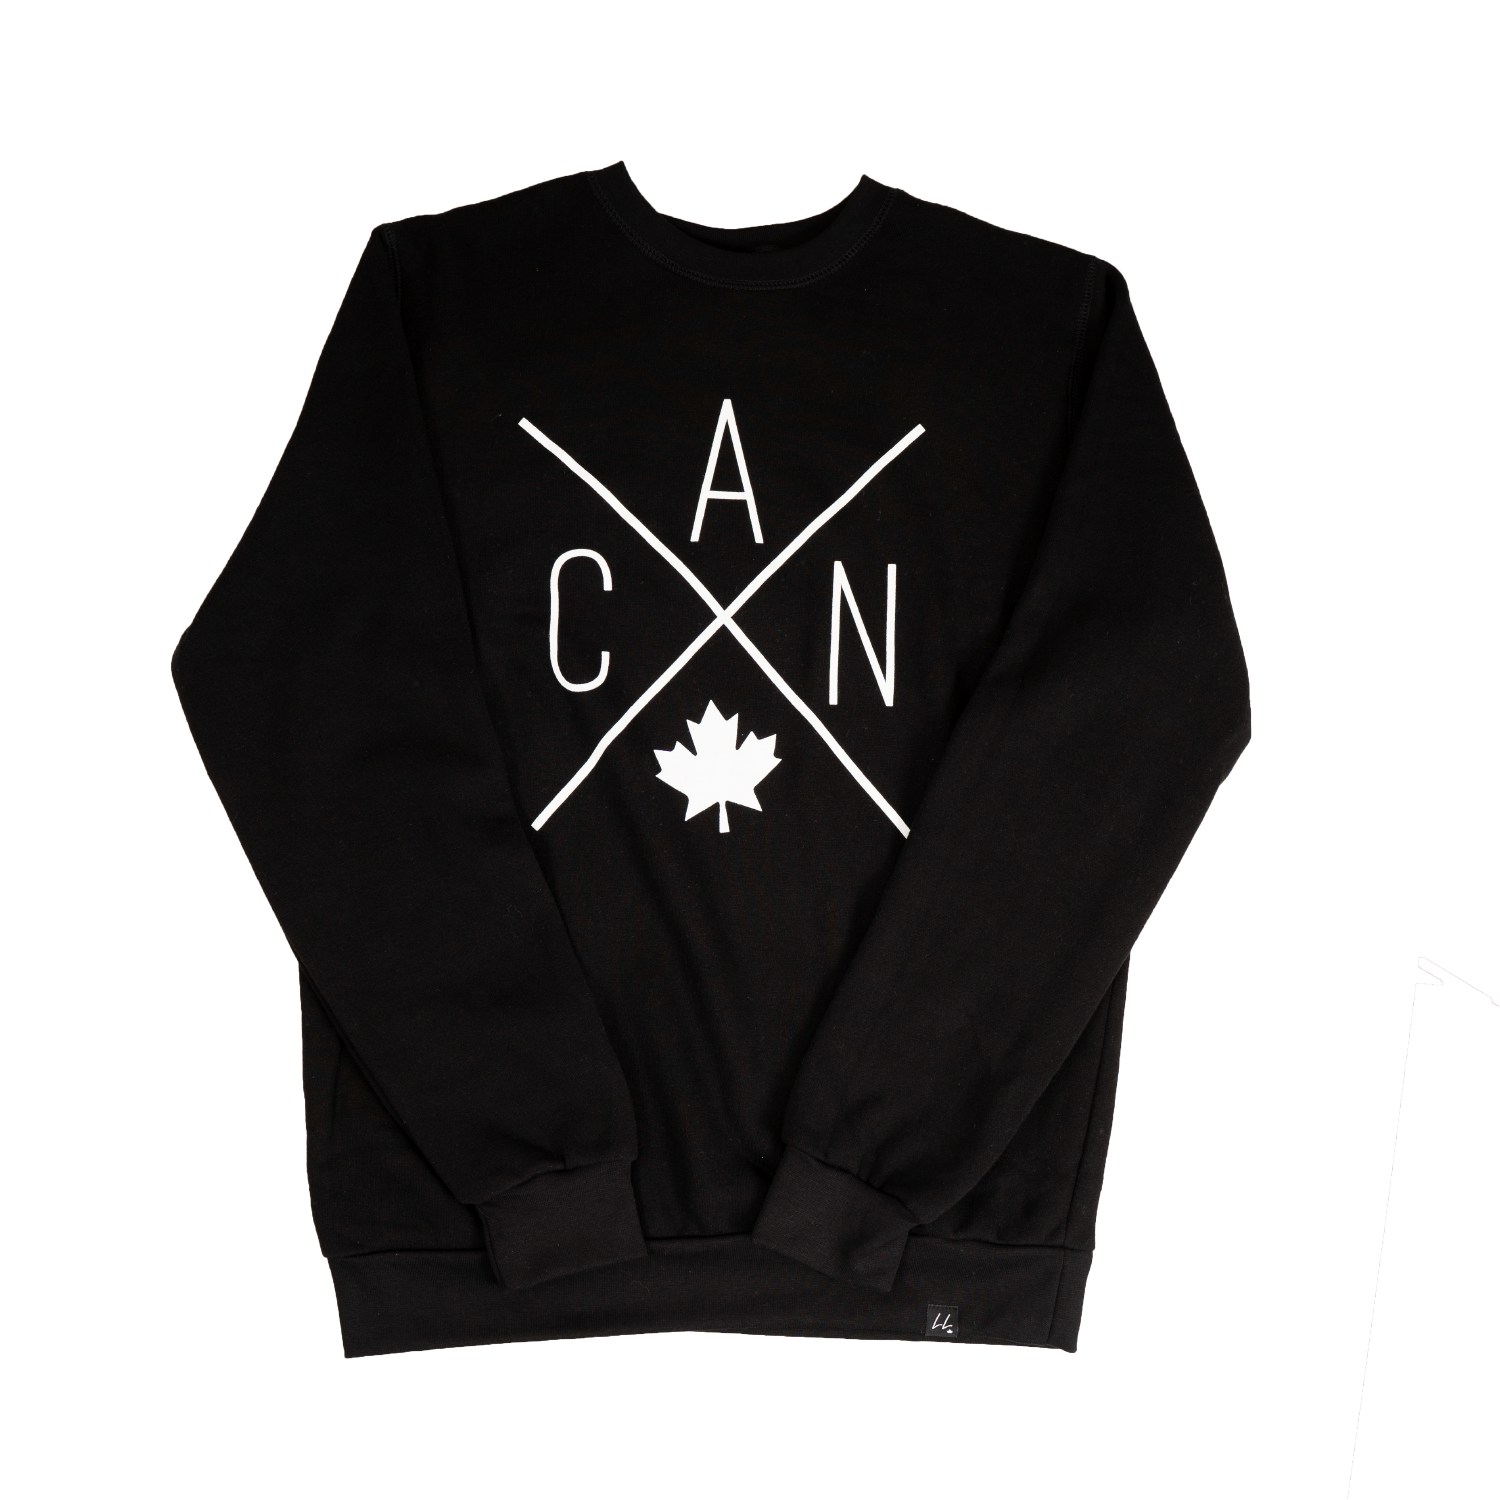 CAN Bamboo Crewneck - Black 🇨🇦 - Local Laundry